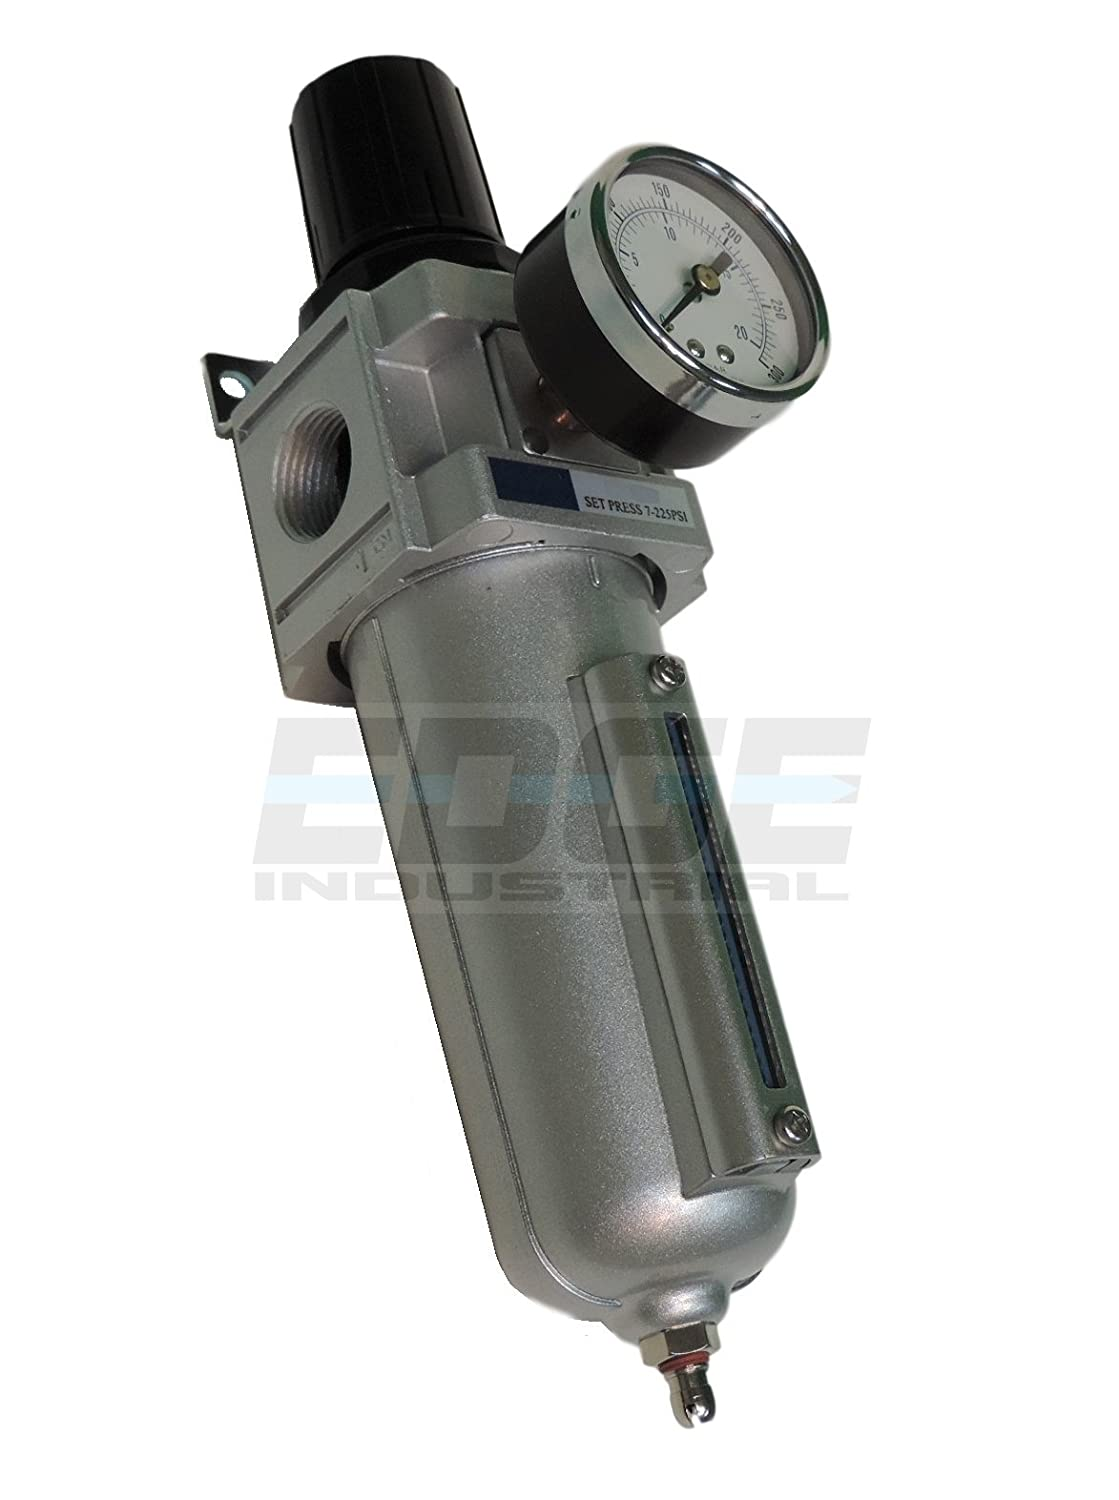 HEAVY DUTY COMPRESSED AIR FILTER REGULATOR COMBO PIGGYBACK, METAL BOWL, 3/4 NPT PORTS, 140 CFM, VISIBLE SIGHT GLASS, 5 MICRON ELEMENT 3/4 NPT PORTS T-H-B CO EDGE INDUSTRIAL